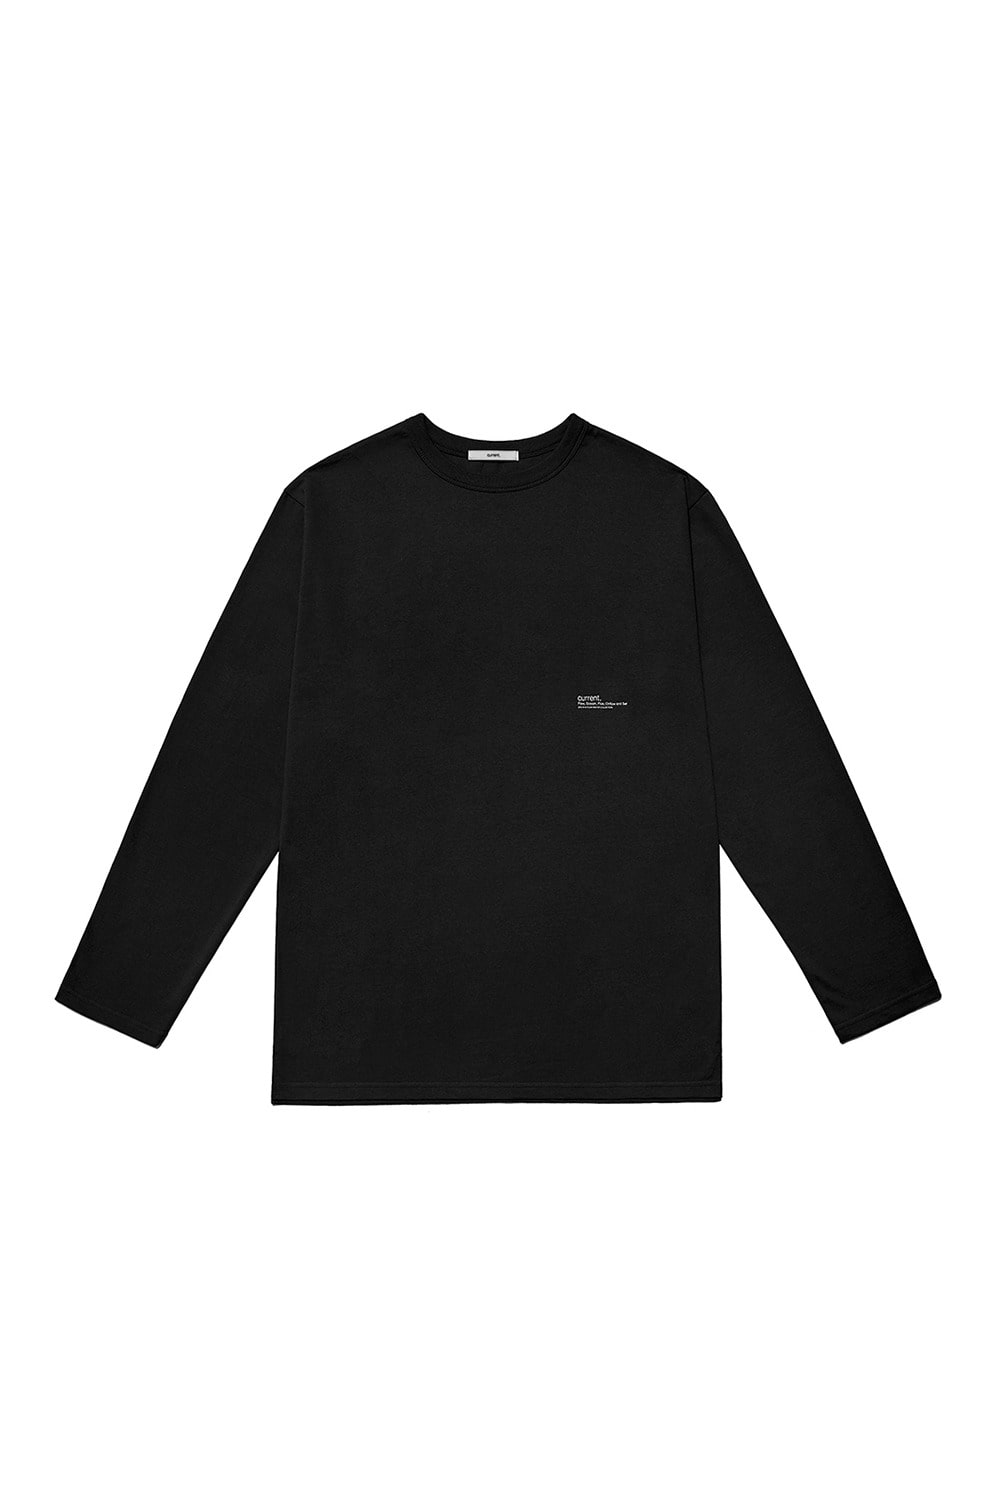 CURRENT LOGO LONG SLEEVE MAN [BLACK]